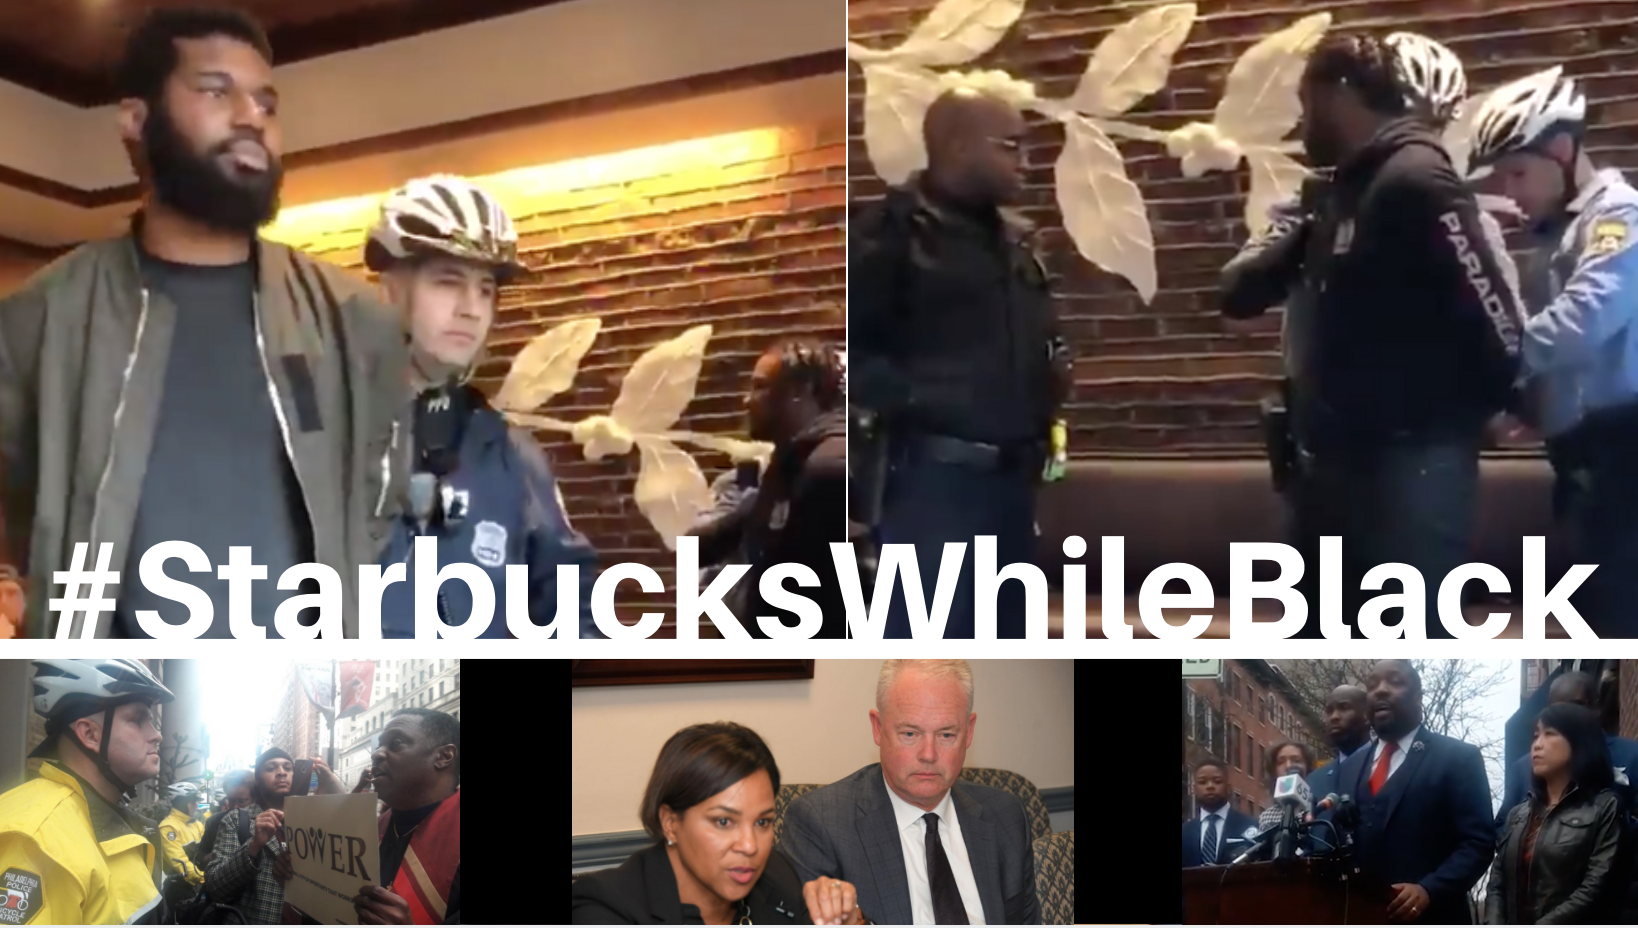 05/11/18 : Uptick in 911 calls for Starbucks' manager